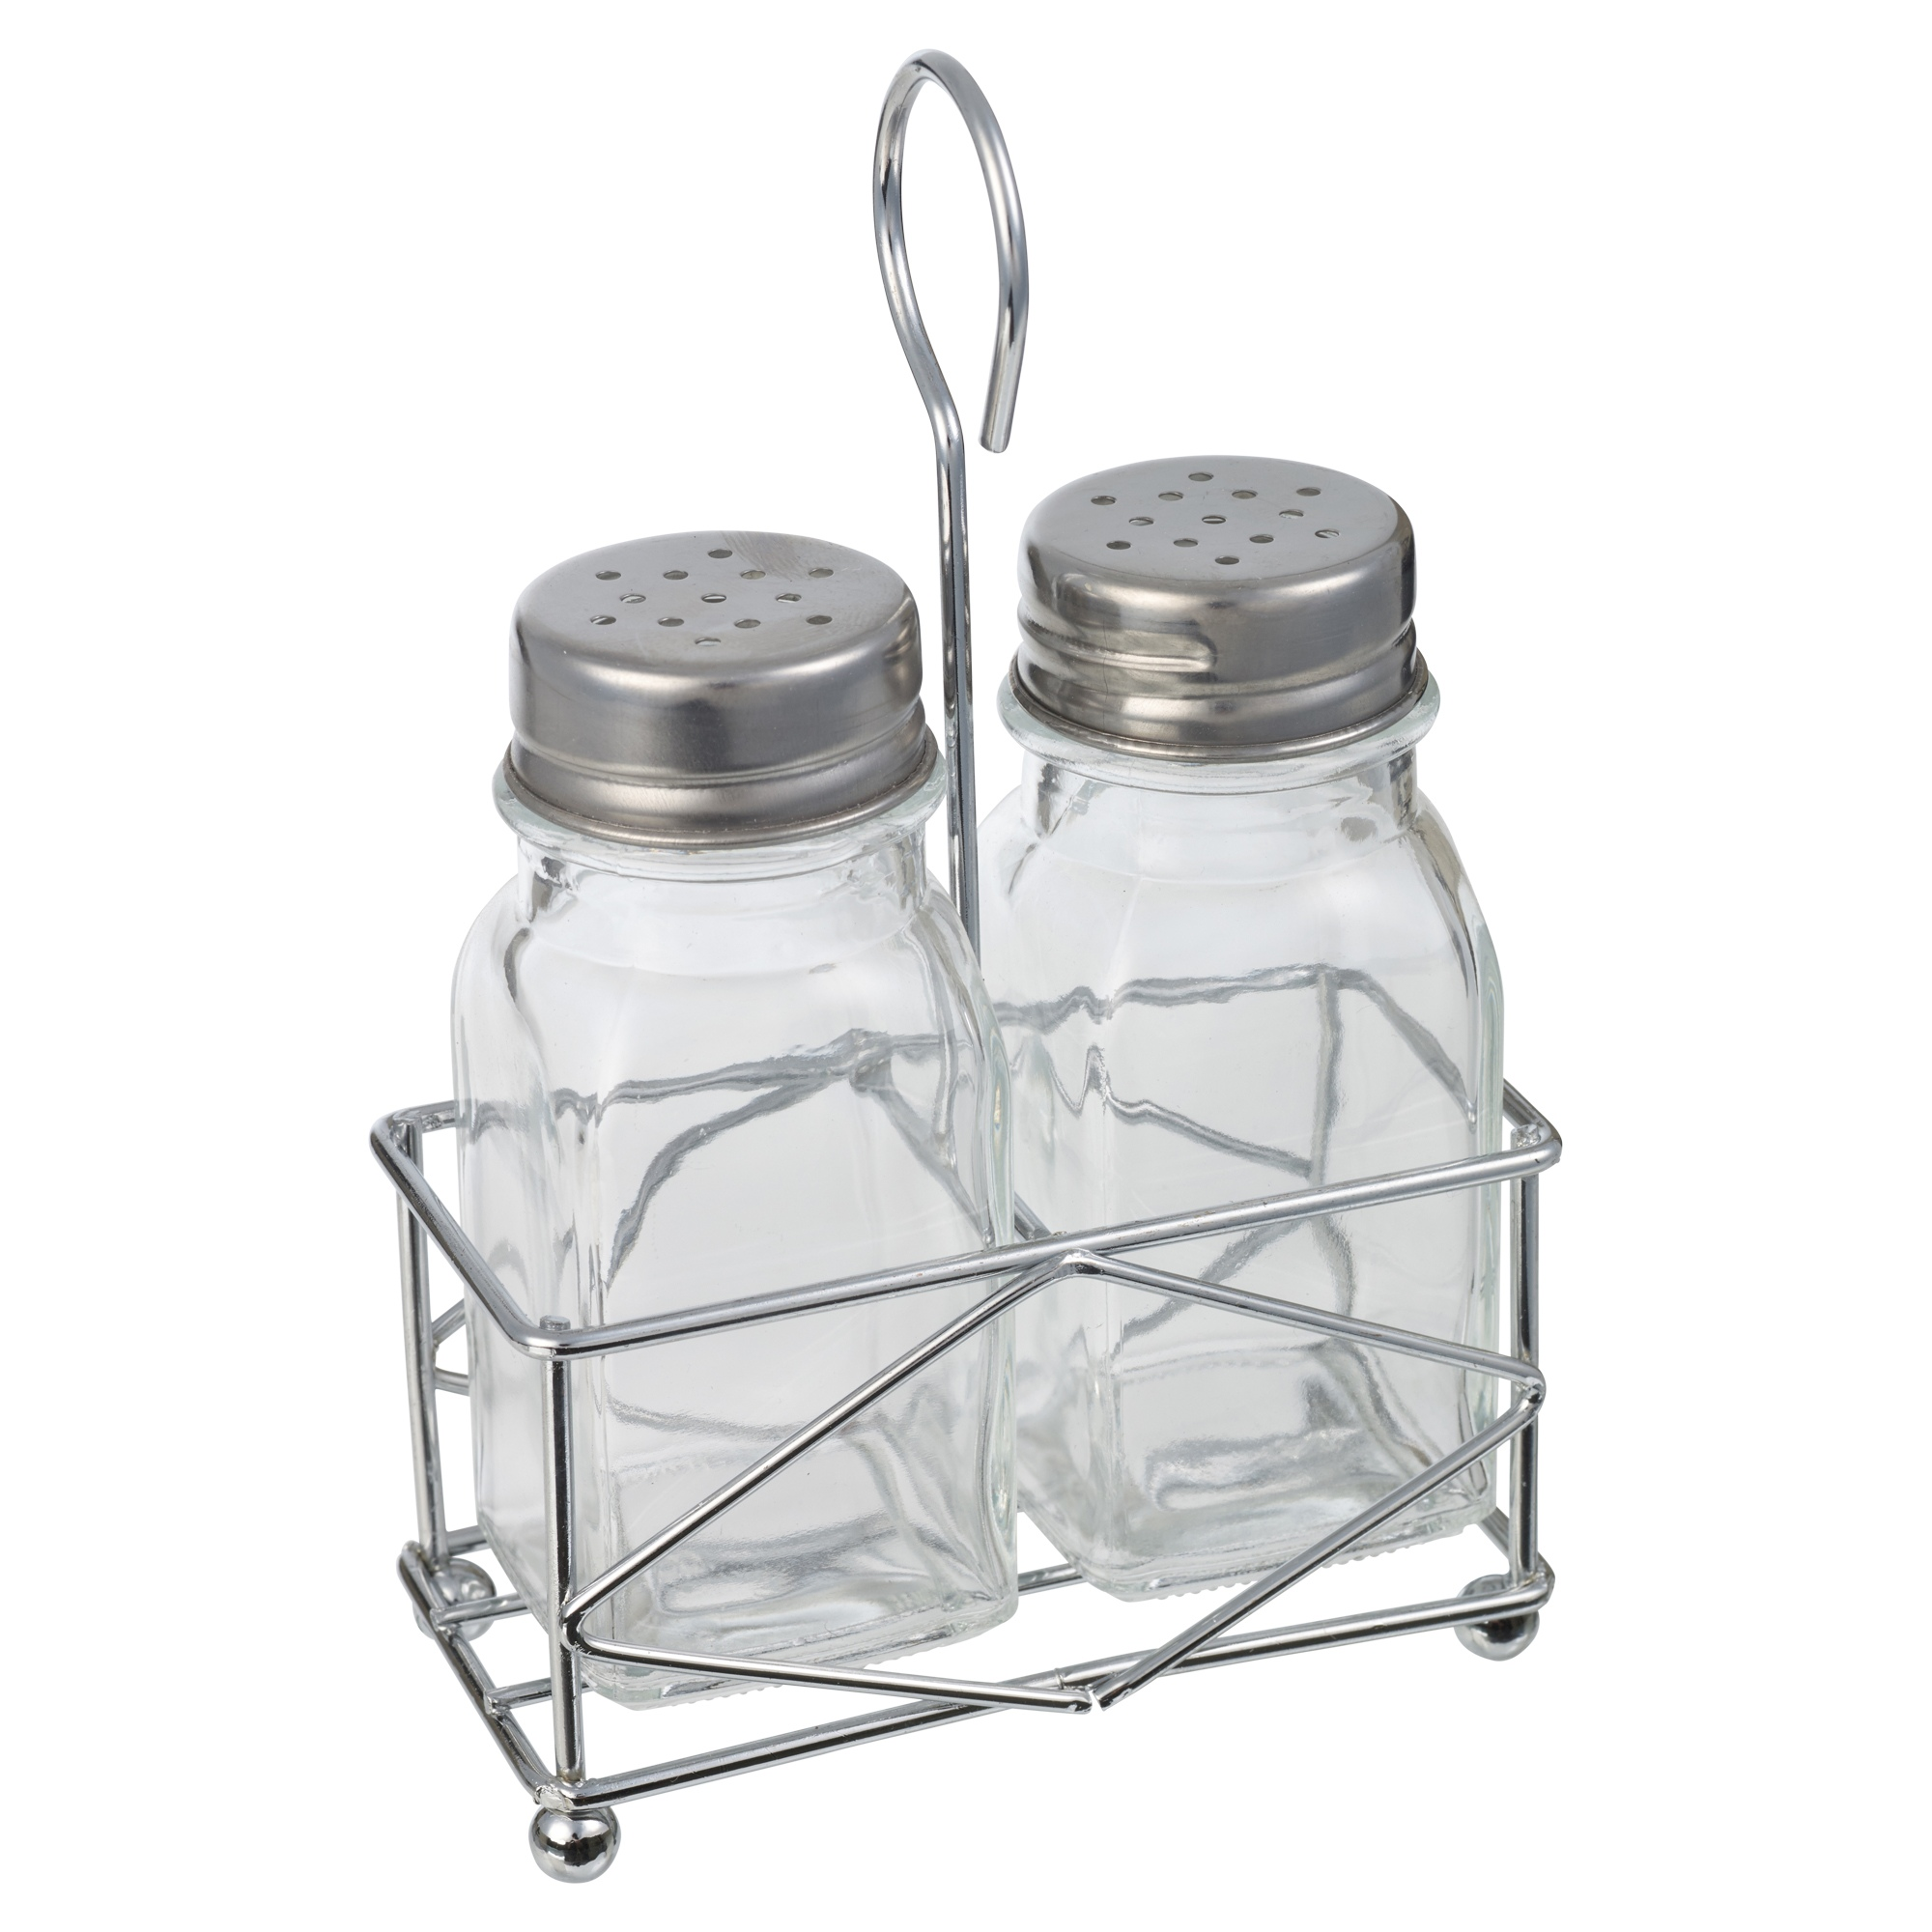 Salt Pepper Holder Glass Salt And Pepper Pot Set Dispenser W Stand Holder